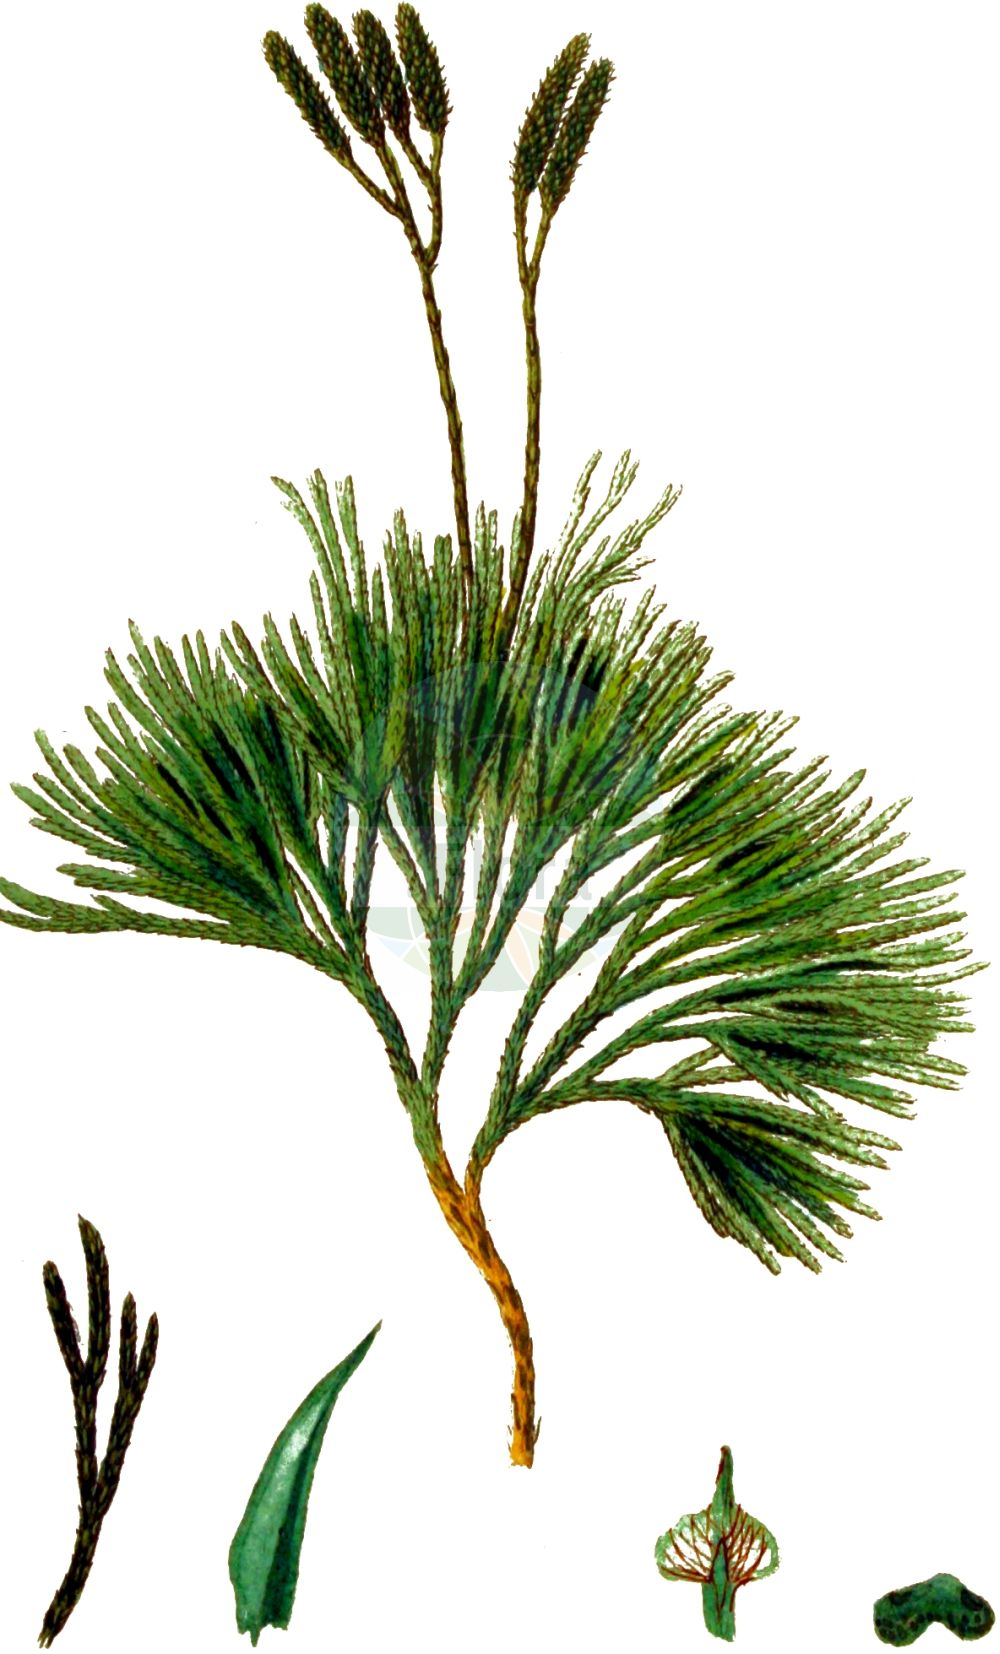 Historische Abbildung von Lycopodium complanatum (Gewoehnlicher Flachbaerlapp - Issler's Clubmoss). Das Bild zeigt Blatt, Bluete, Frucht und Same. ---- Historical Drawing of Lycopodium complanatum (Gewoehnlicher Flachbaerlapp - Issler's Clubmoss).The image is showing leaf, flower, fruit and seed.(Lycopodium complanatum,Gewoehnlicher Flachbaerlapp,Issler's Clubmoss,Diphasiastrum complanatum,Diphasium anceps,Diphasium complanatum,Lycopodium anceps,Lycopodium complanatum,Lycopodium complanatum subsp. montellii,Gewoehnlicher Flachbaerlapp,Gewoehnlicher Flachbaerlapp,Issler's Clubmoss,Flat-stemmed Clubmoss,Groundcedar,Complanate Clubmoss,Lycopodium,Baerlapp,Clubmoss,Lycopodiaceae,Baerlappgewaechse,Clubmoss family,Blatt,Bluete,Frucht,Same,leaf,flower,fruit,seed,Kops (1800-1934))